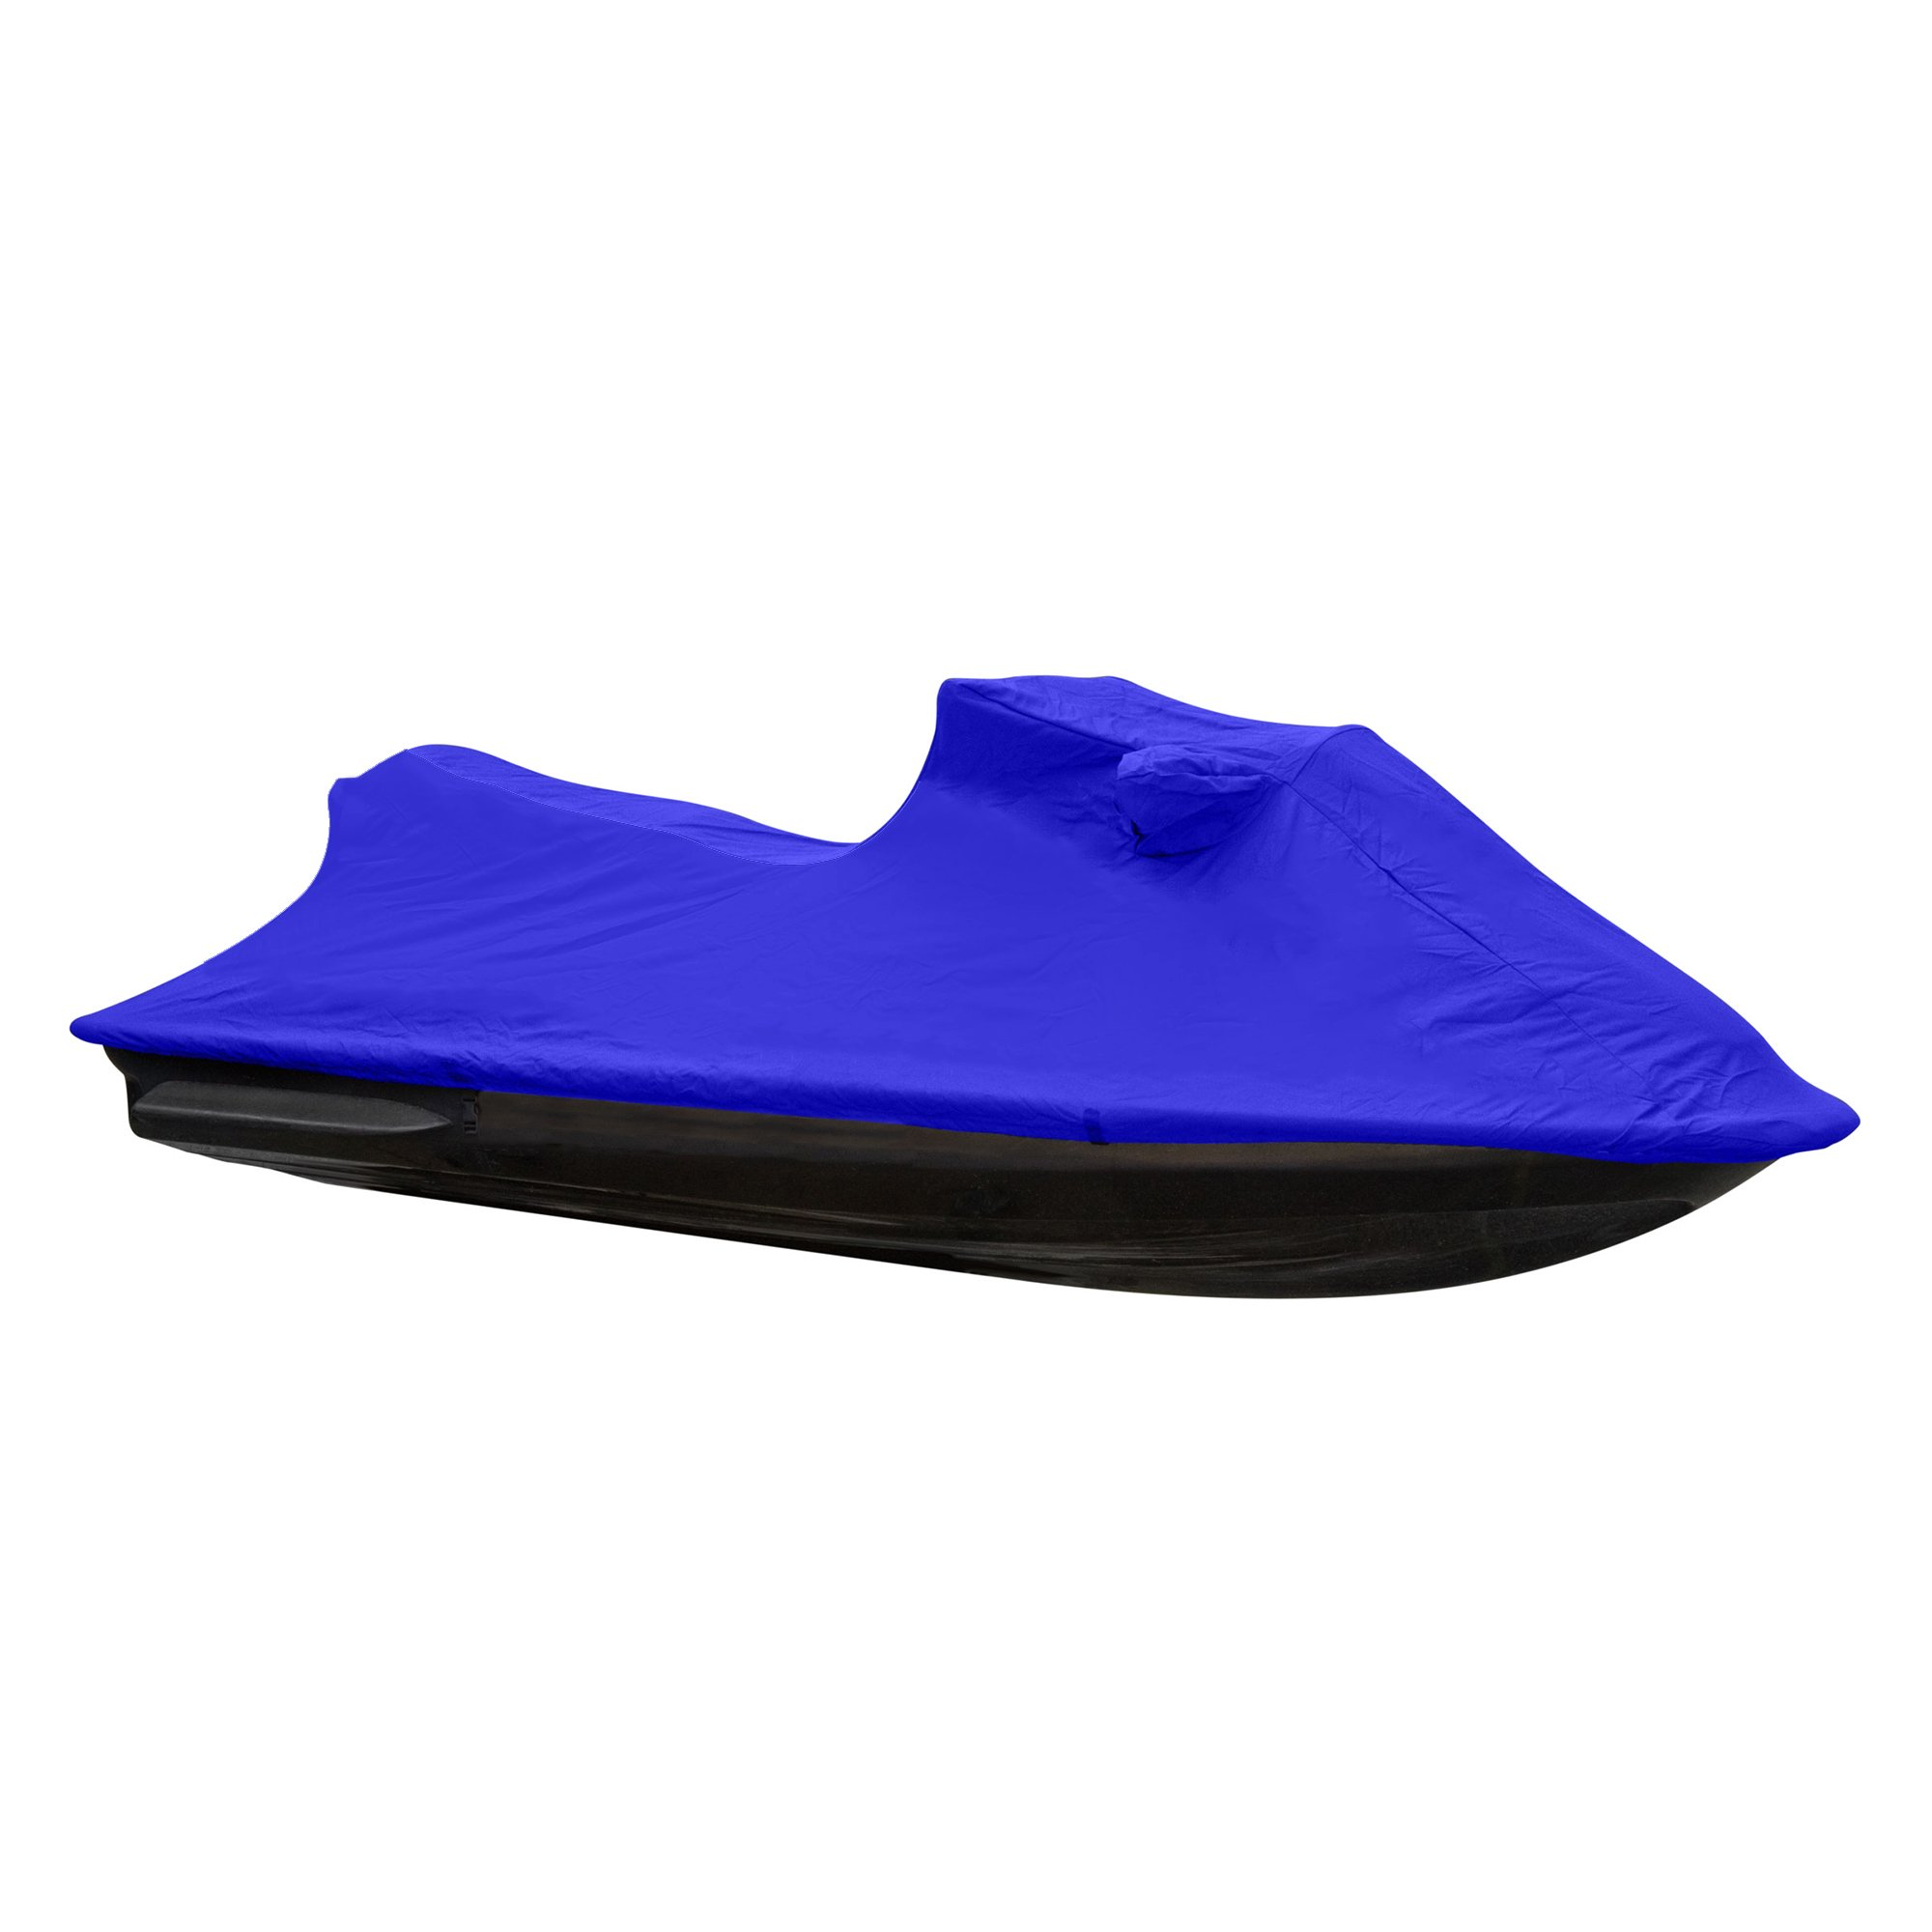 Westland Exact Fit PWC Cover for Sea Doo